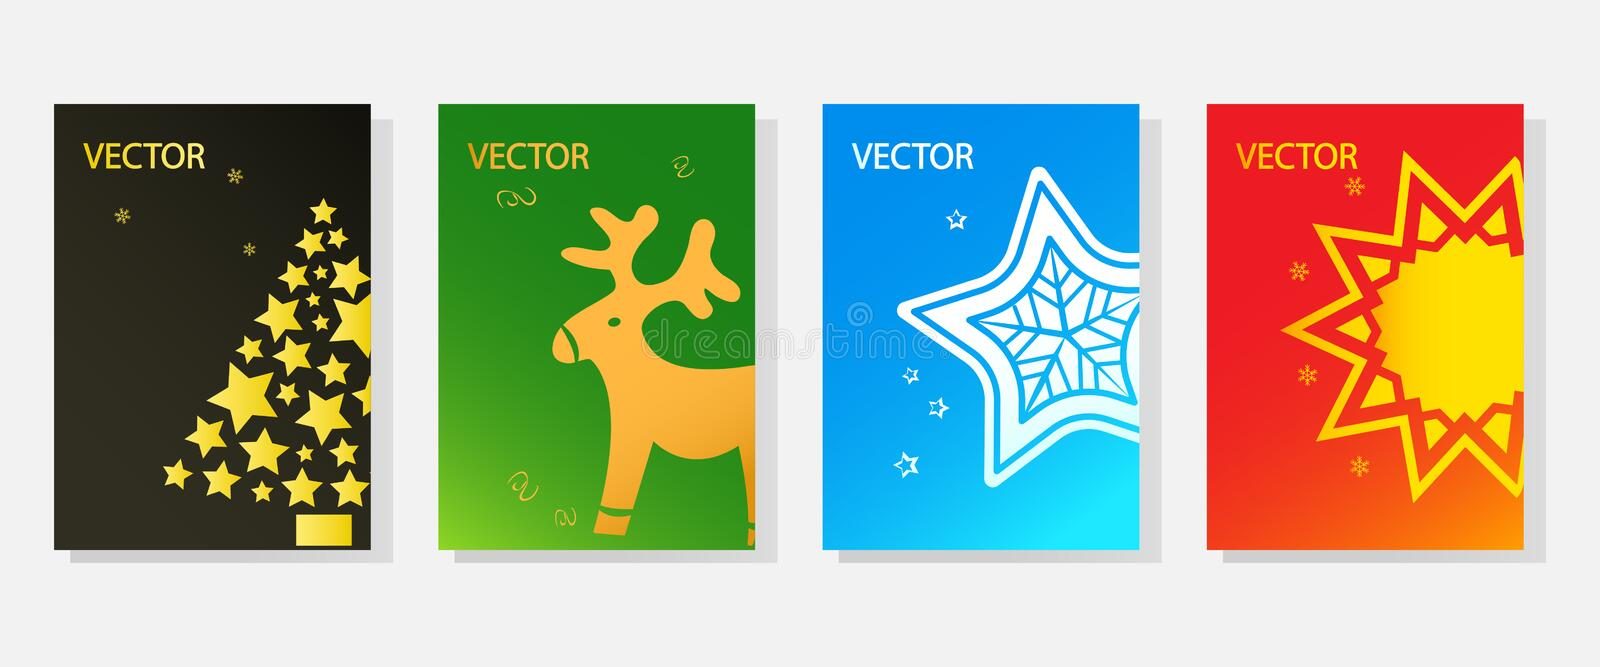 Set of Christmas greeting cards, template colorful holiday banners, space for your text. Vector. Illustration vector illustration